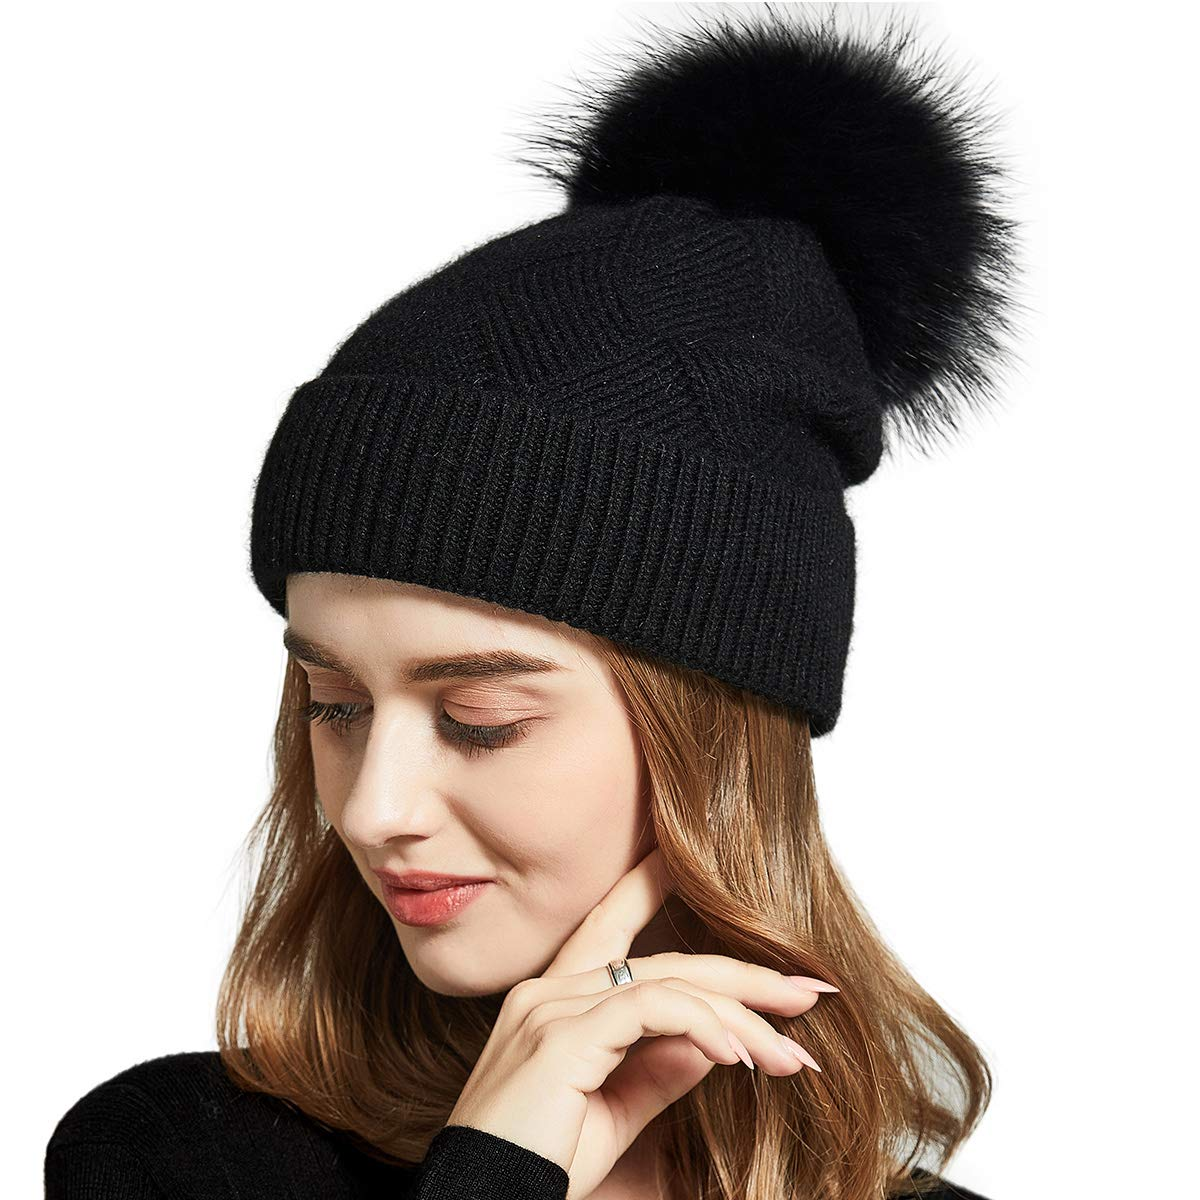 SOMALER Knitted Beanie hat for Women Girls Racoon Real Fur Pompom Winter Chunky Baggy Hat 10 Colors